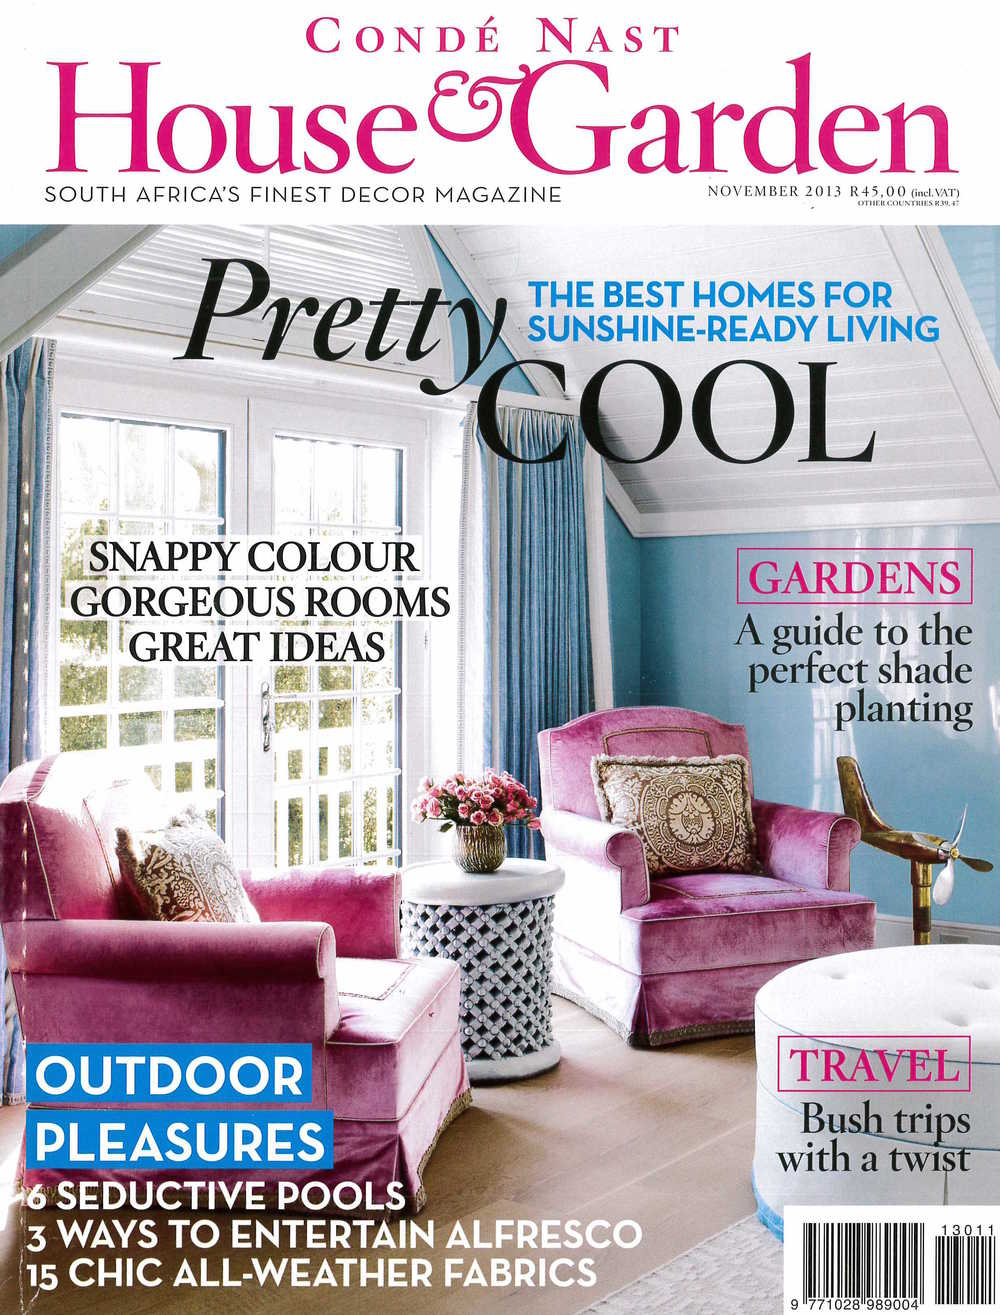 house-garden-south-africa_2013_cover.jpg